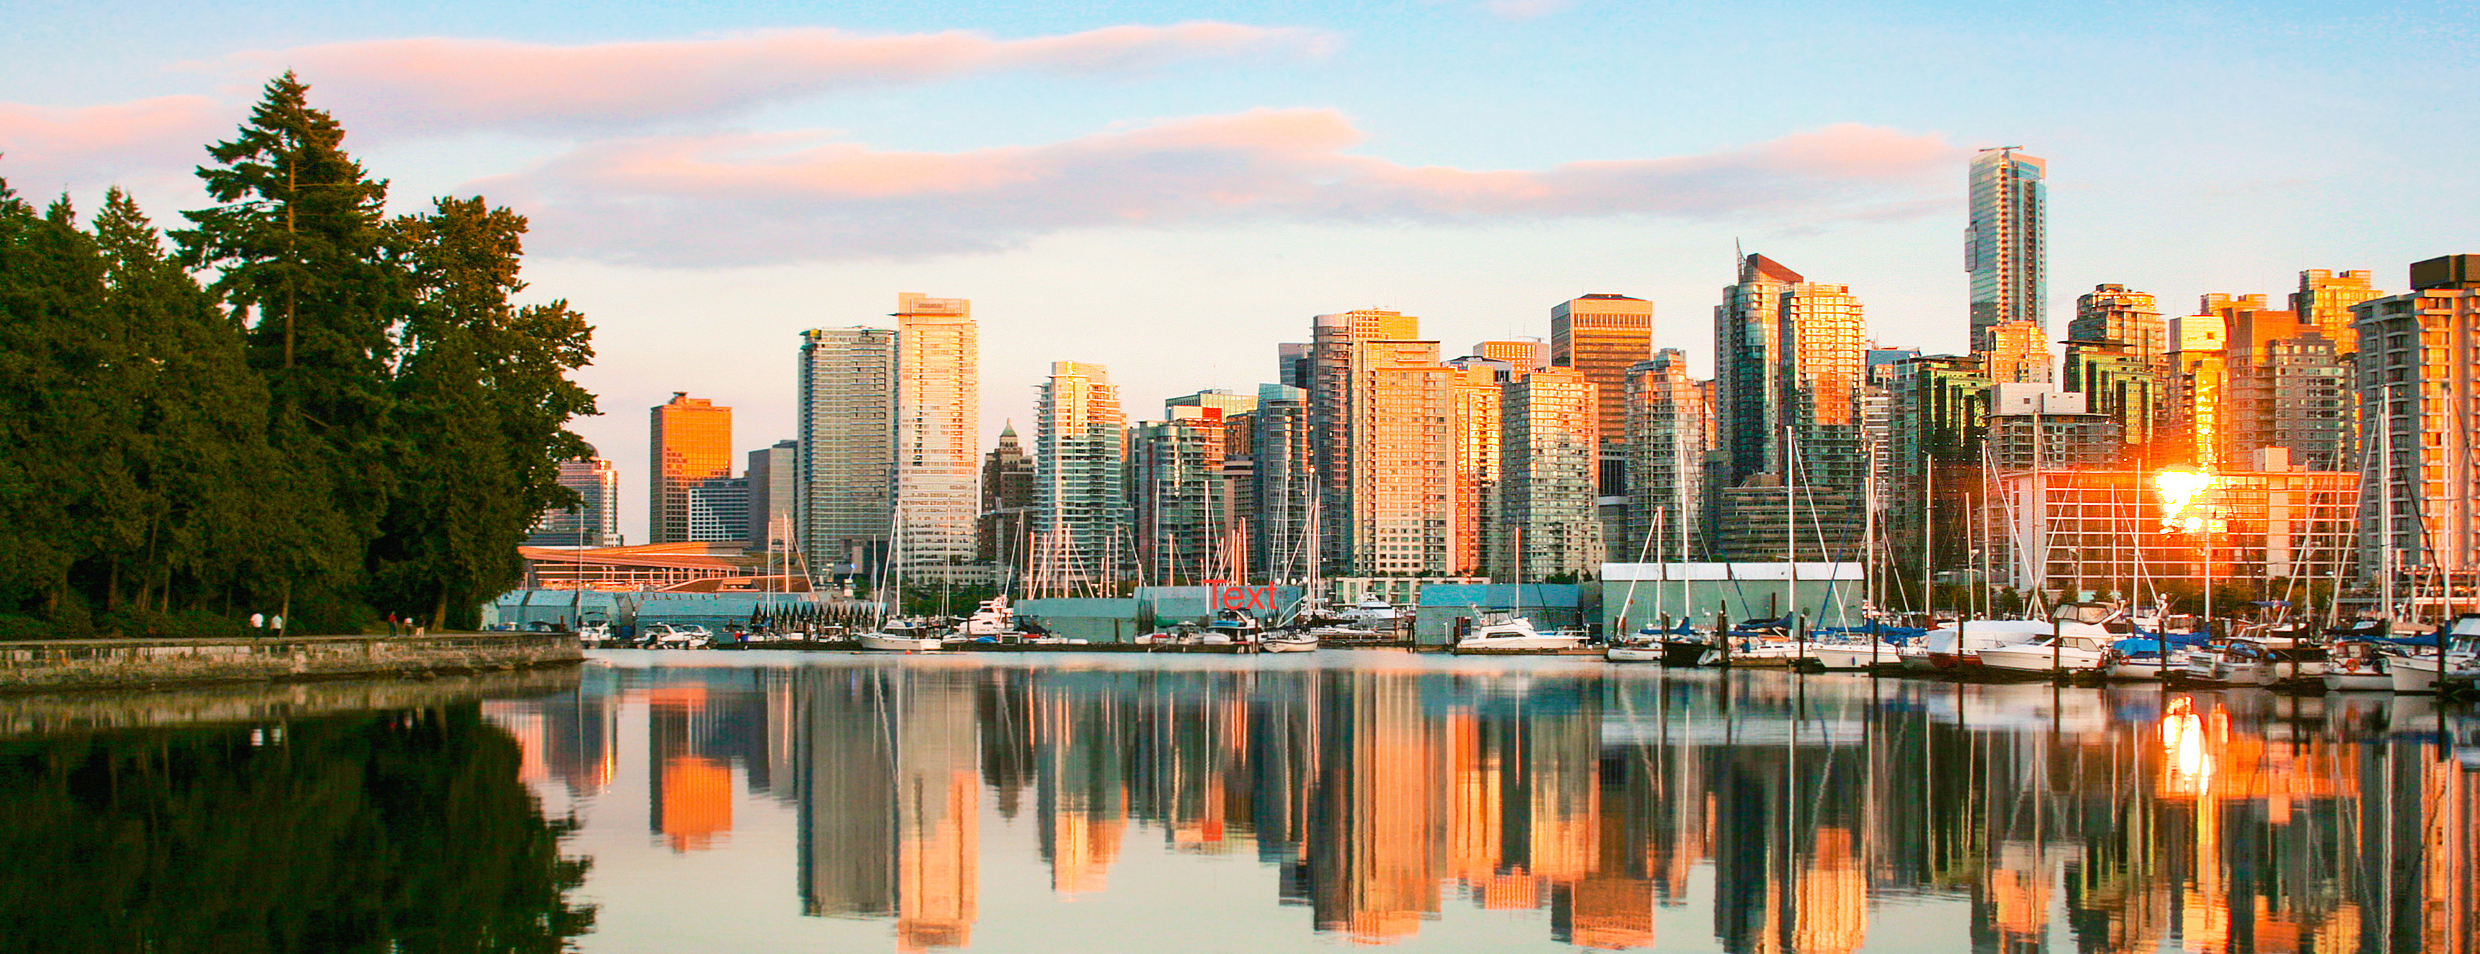 Immigration to Canada - Canadian Permanent Residency - Vancouver